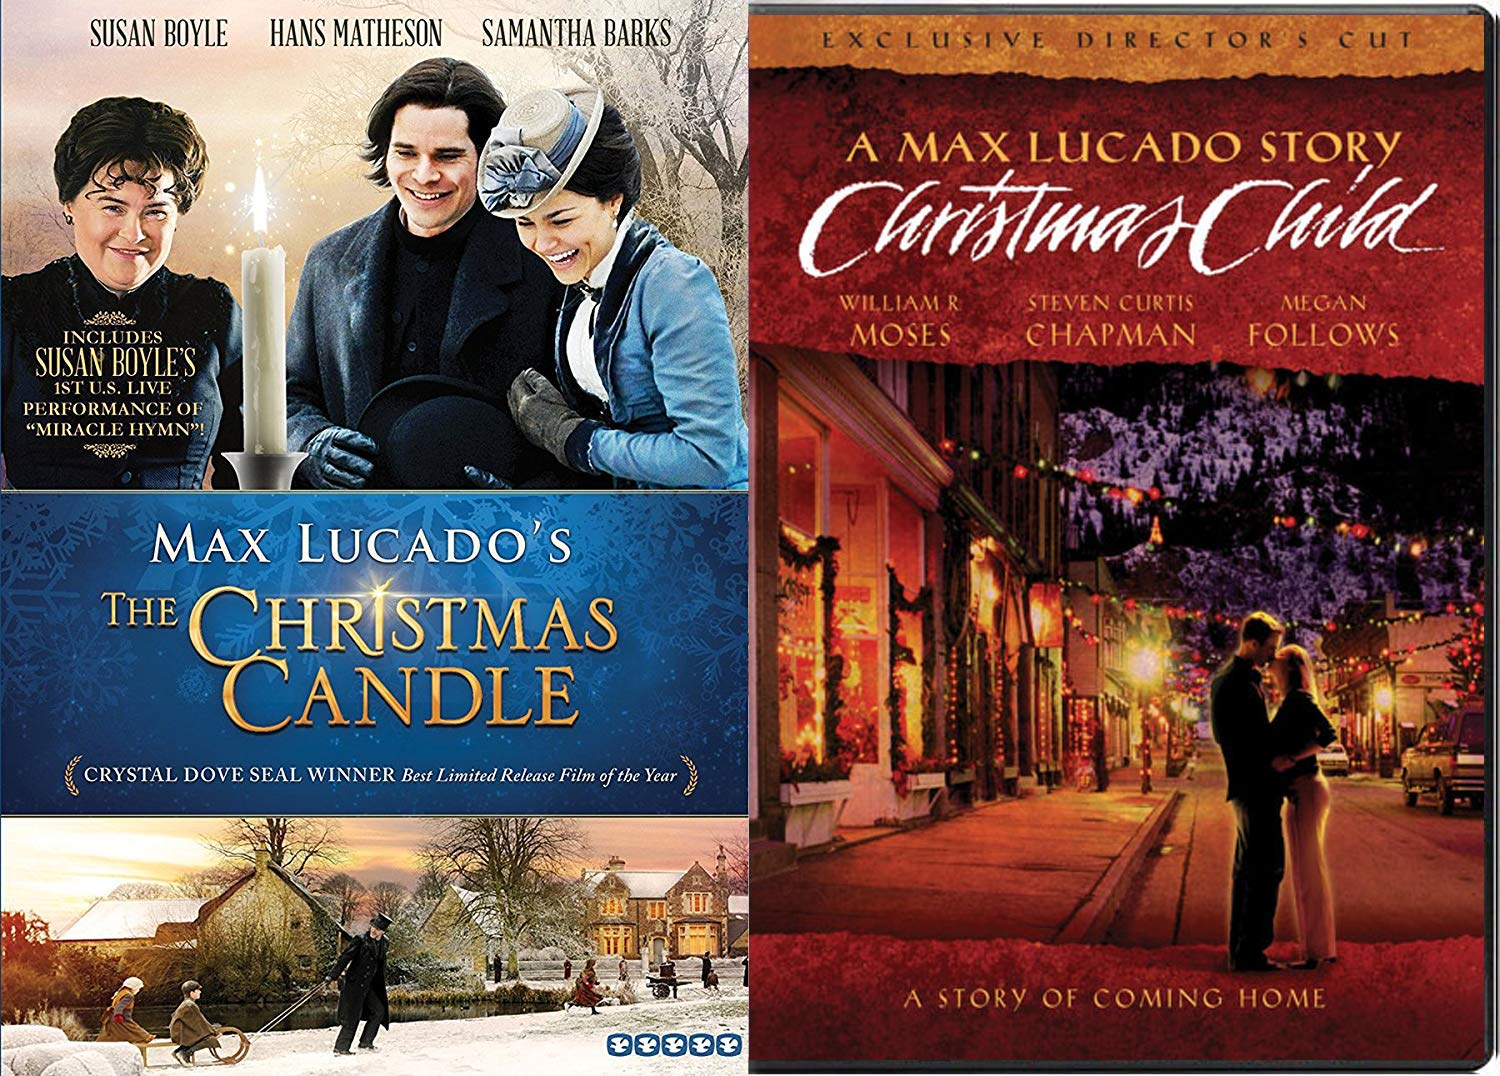 Story of Coming Home for Christmas Child & The Christmas Candle Max Lucando's Double Feature DVD Bundle Holiday Collection 2 Pack